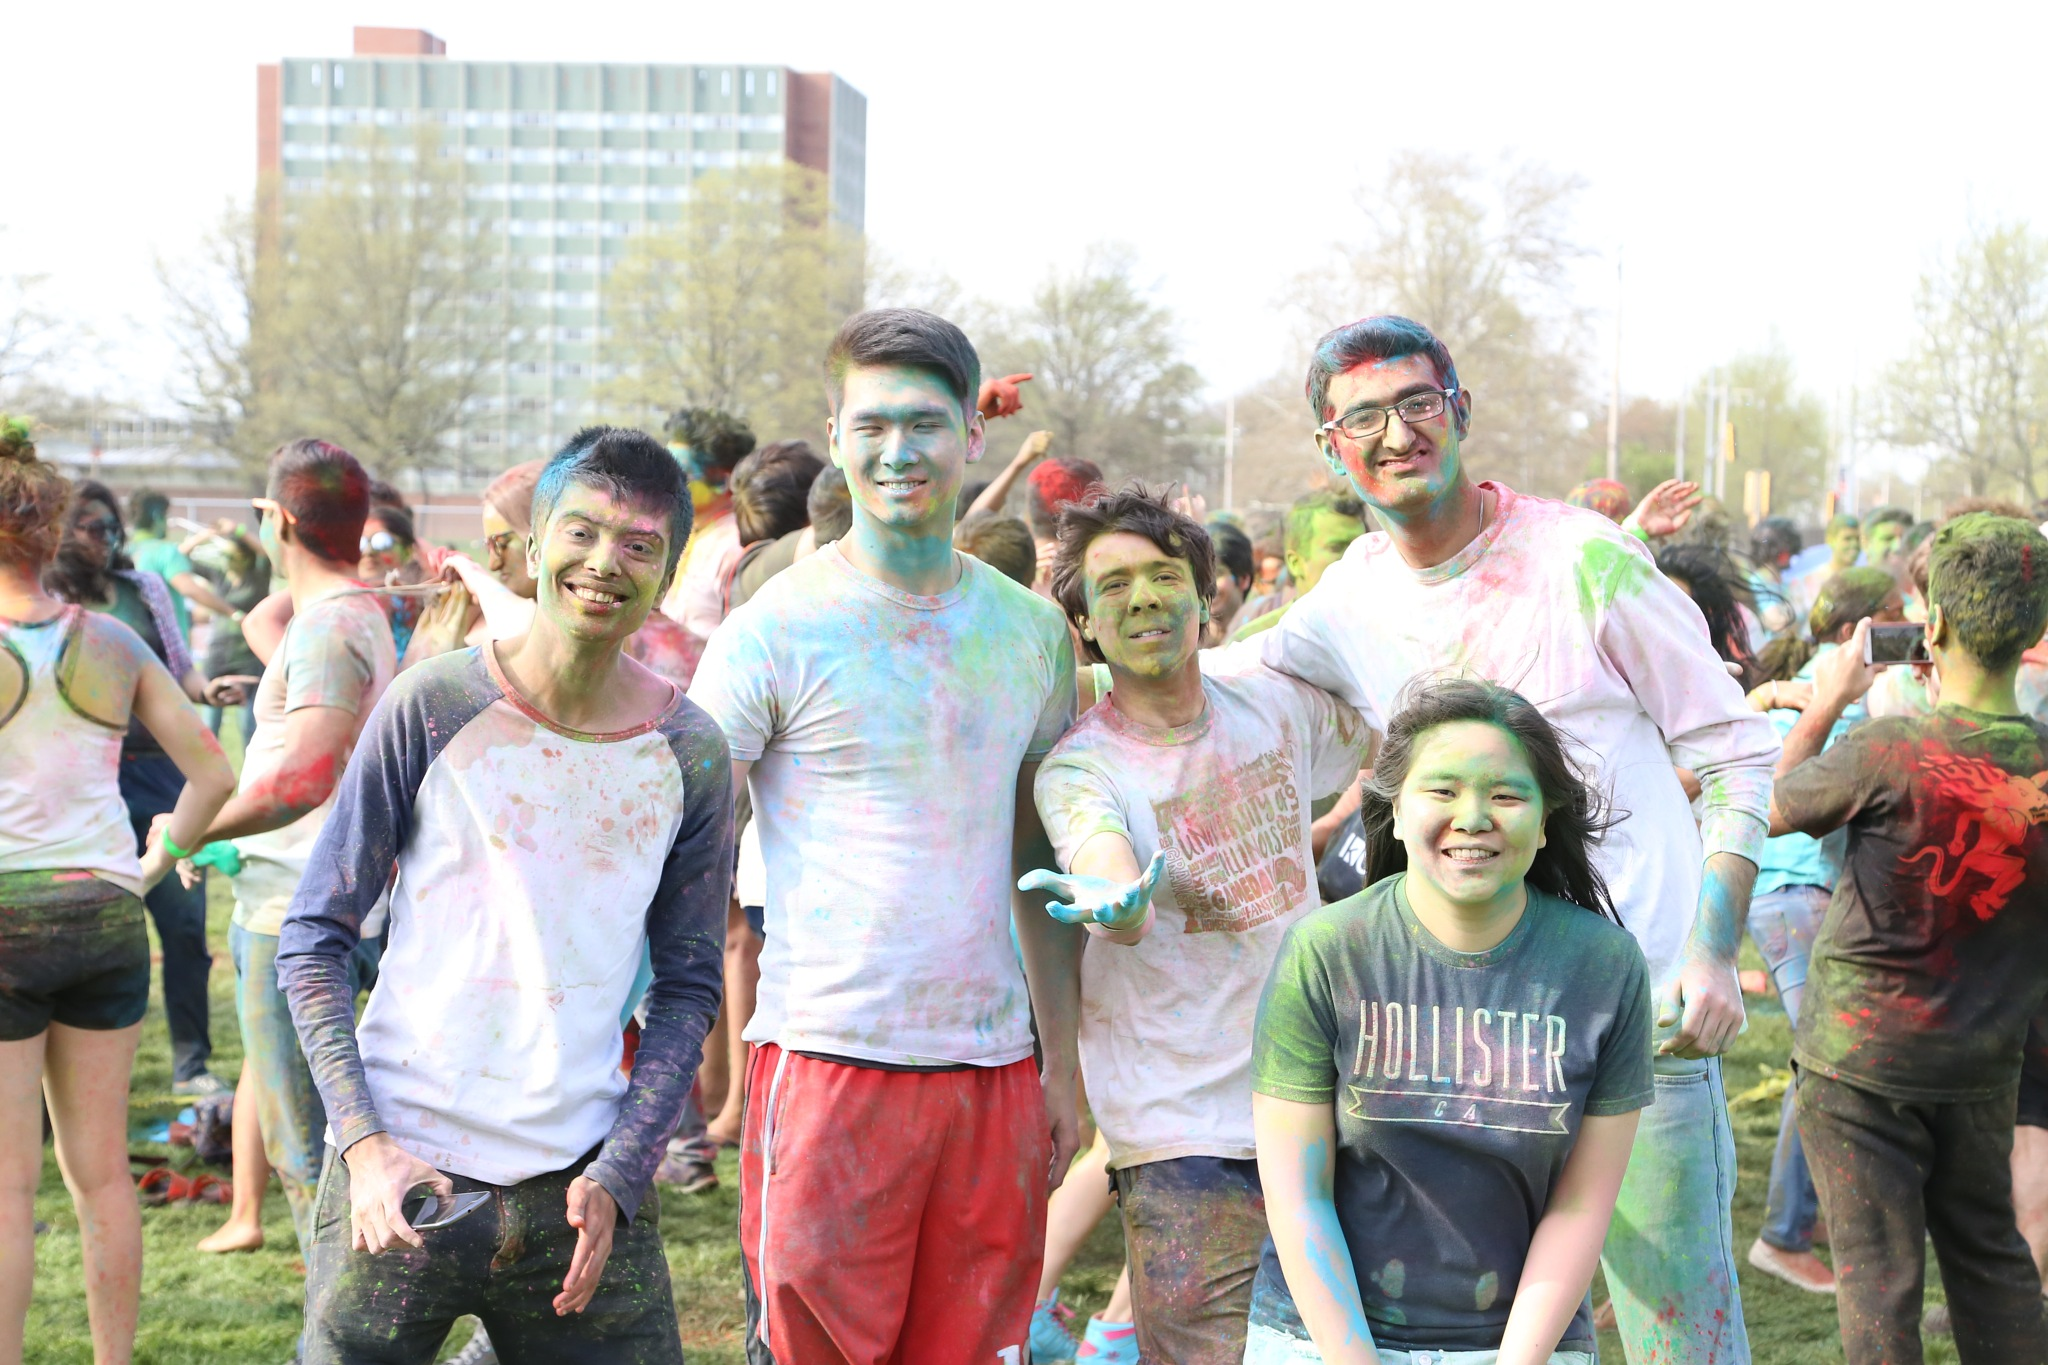 Holi Festival 5 by Henry M. Radcliffe III